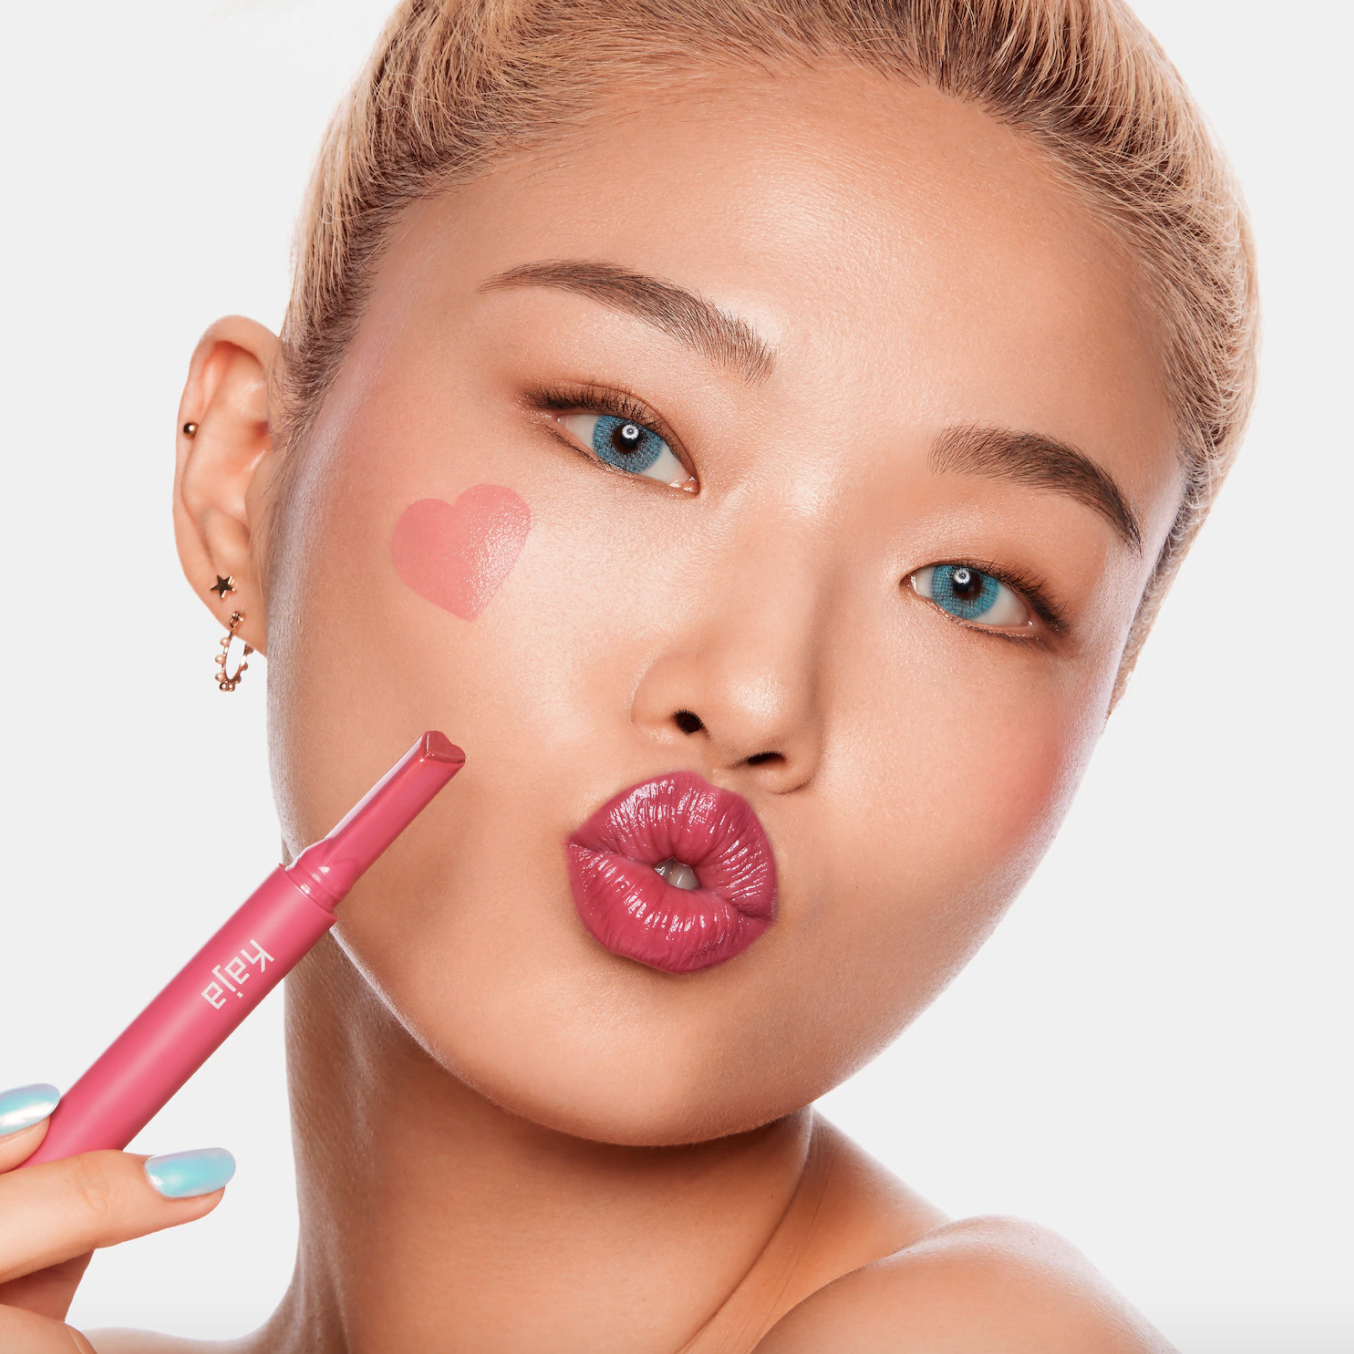 22 Products That Will Help Save Your Dry Lips